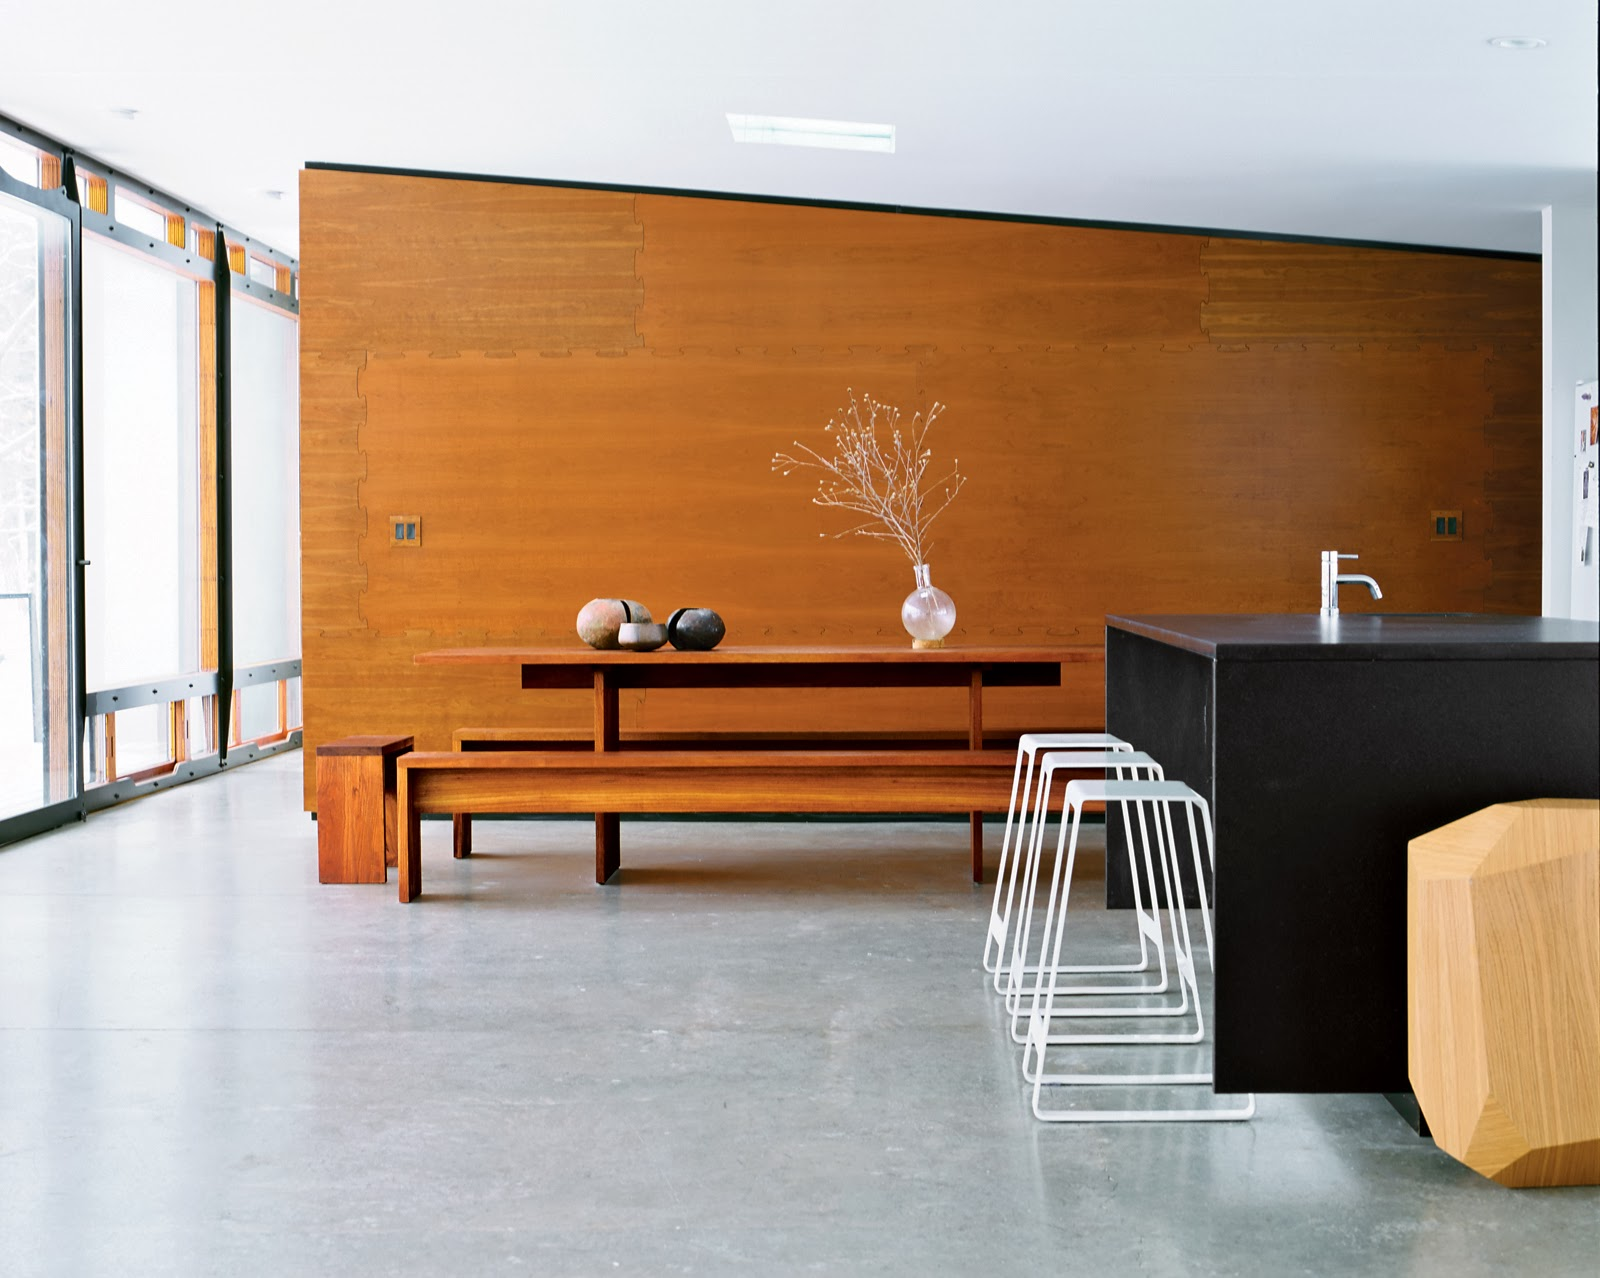 Iiiinspired space a spacious prefab with lots of wood - Kitchen and dining area design crossword ...